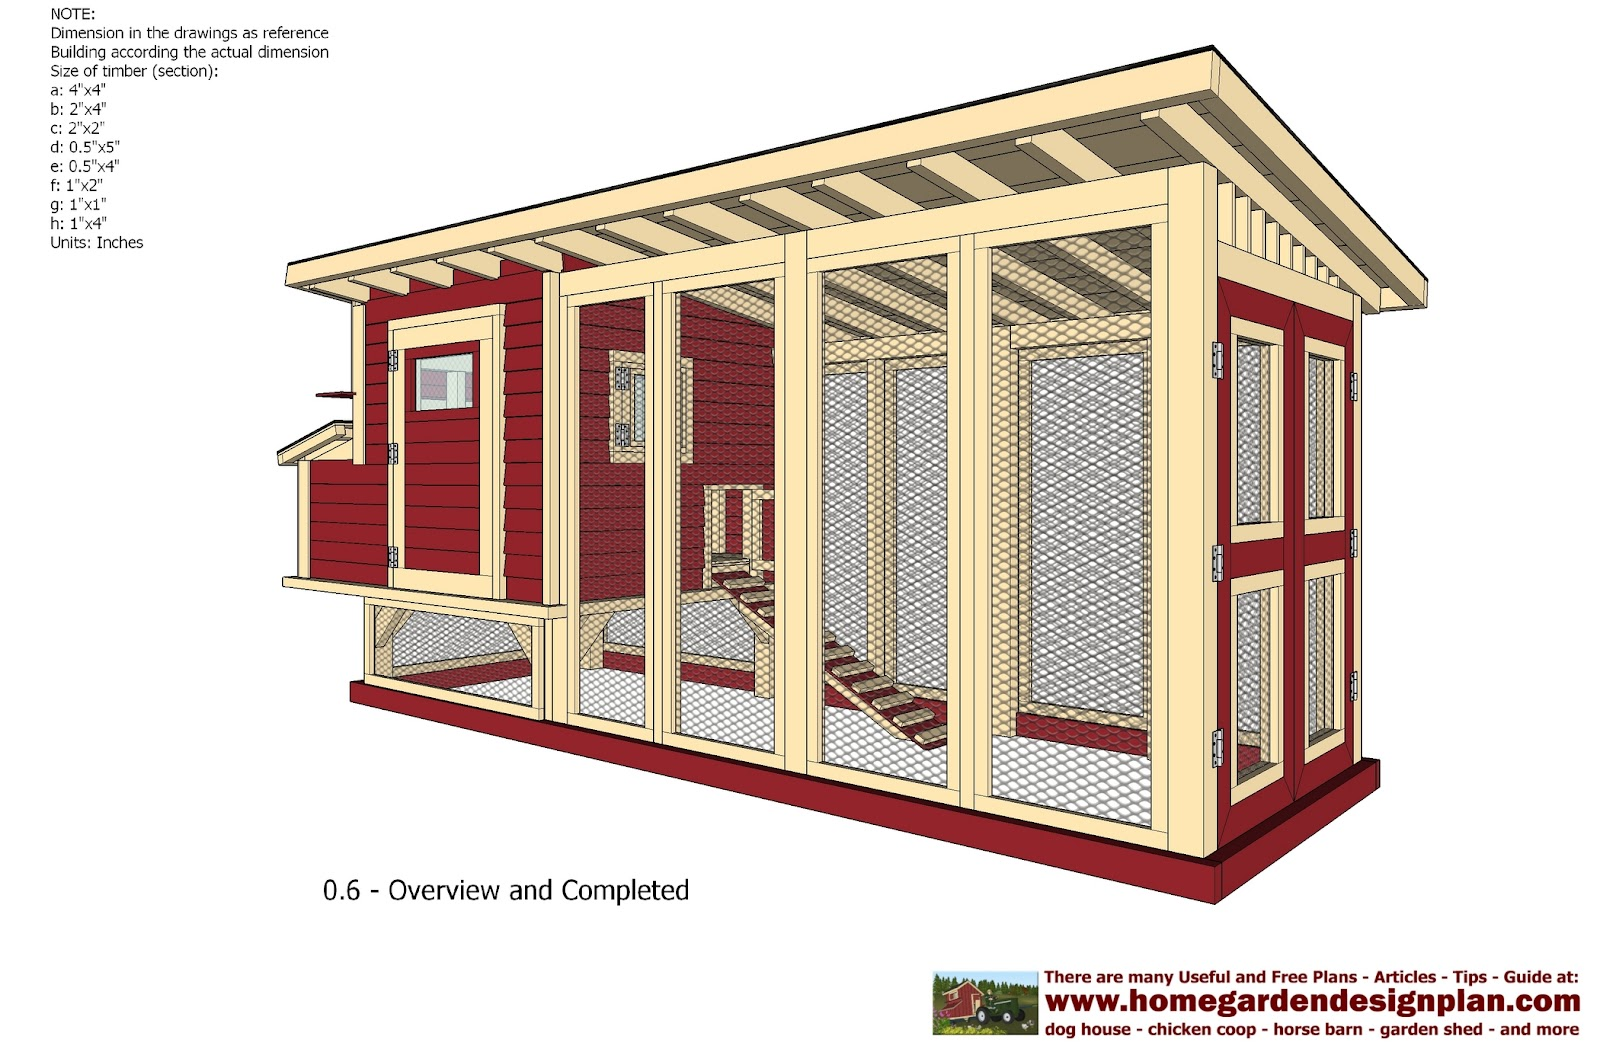 Just coop pvc chicken coop plans pdf for Plans chicken coop